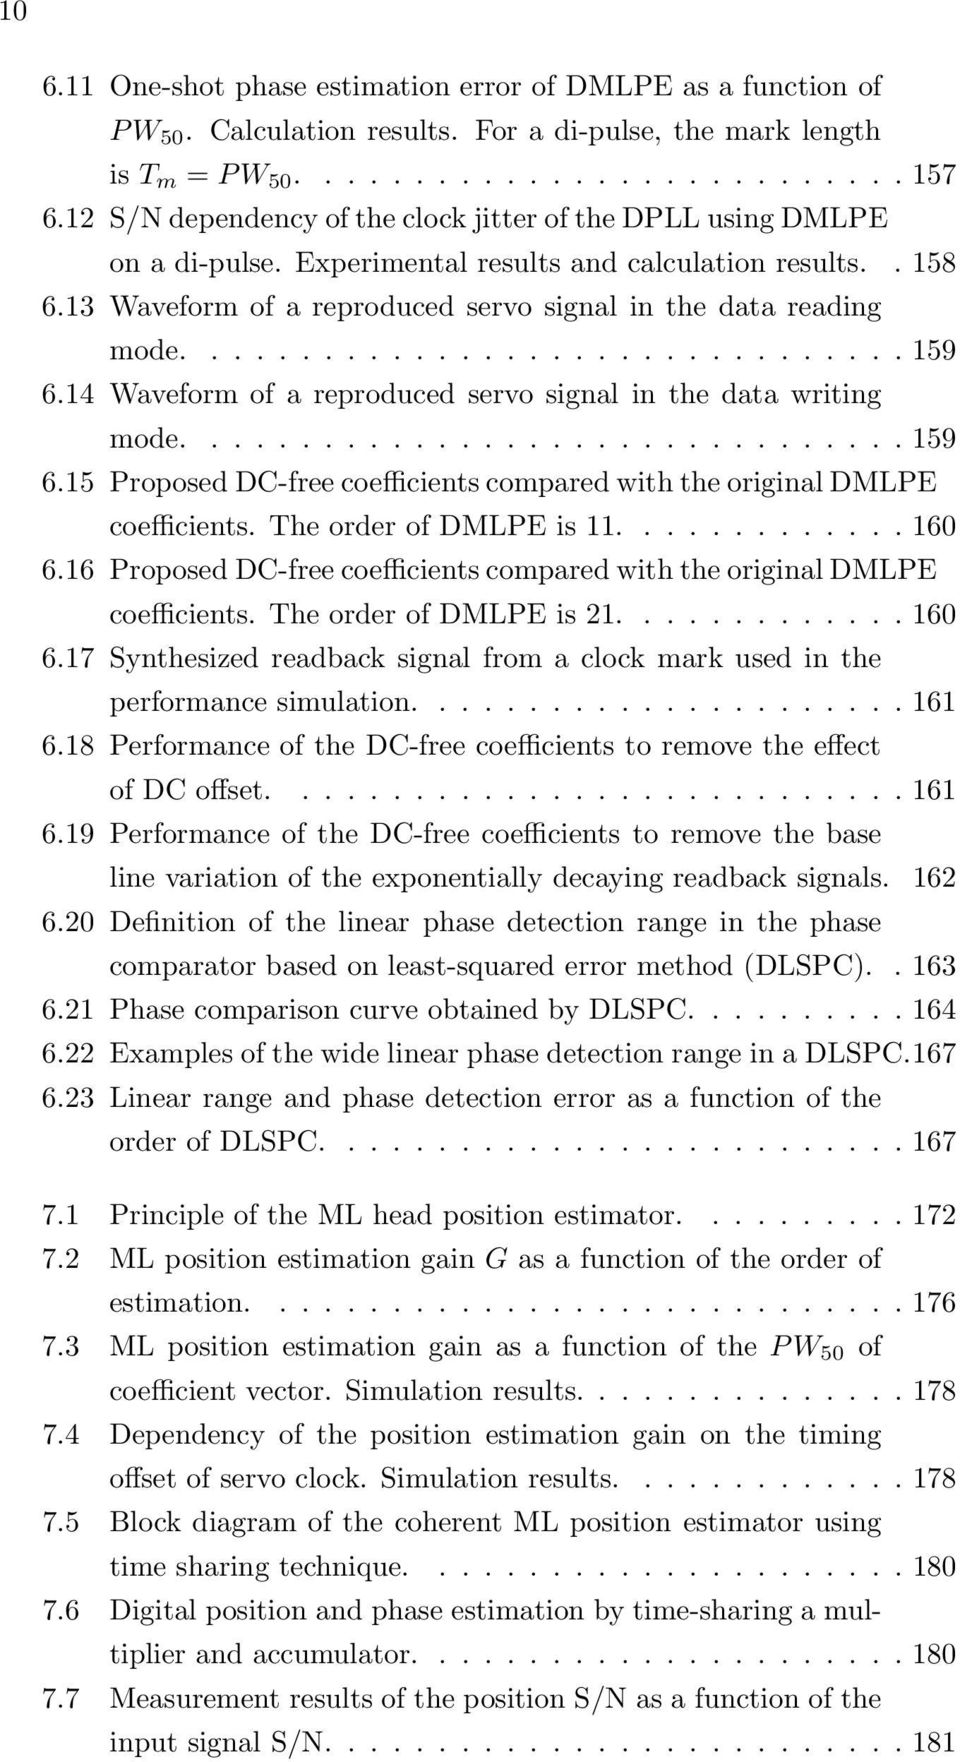 ............................... 159 6.14 Waveform of a reproduced servo signal in the data writing mode................................ 159 6.15 Proposed DC-free coefficients compared with the original DMLPE coefficients.